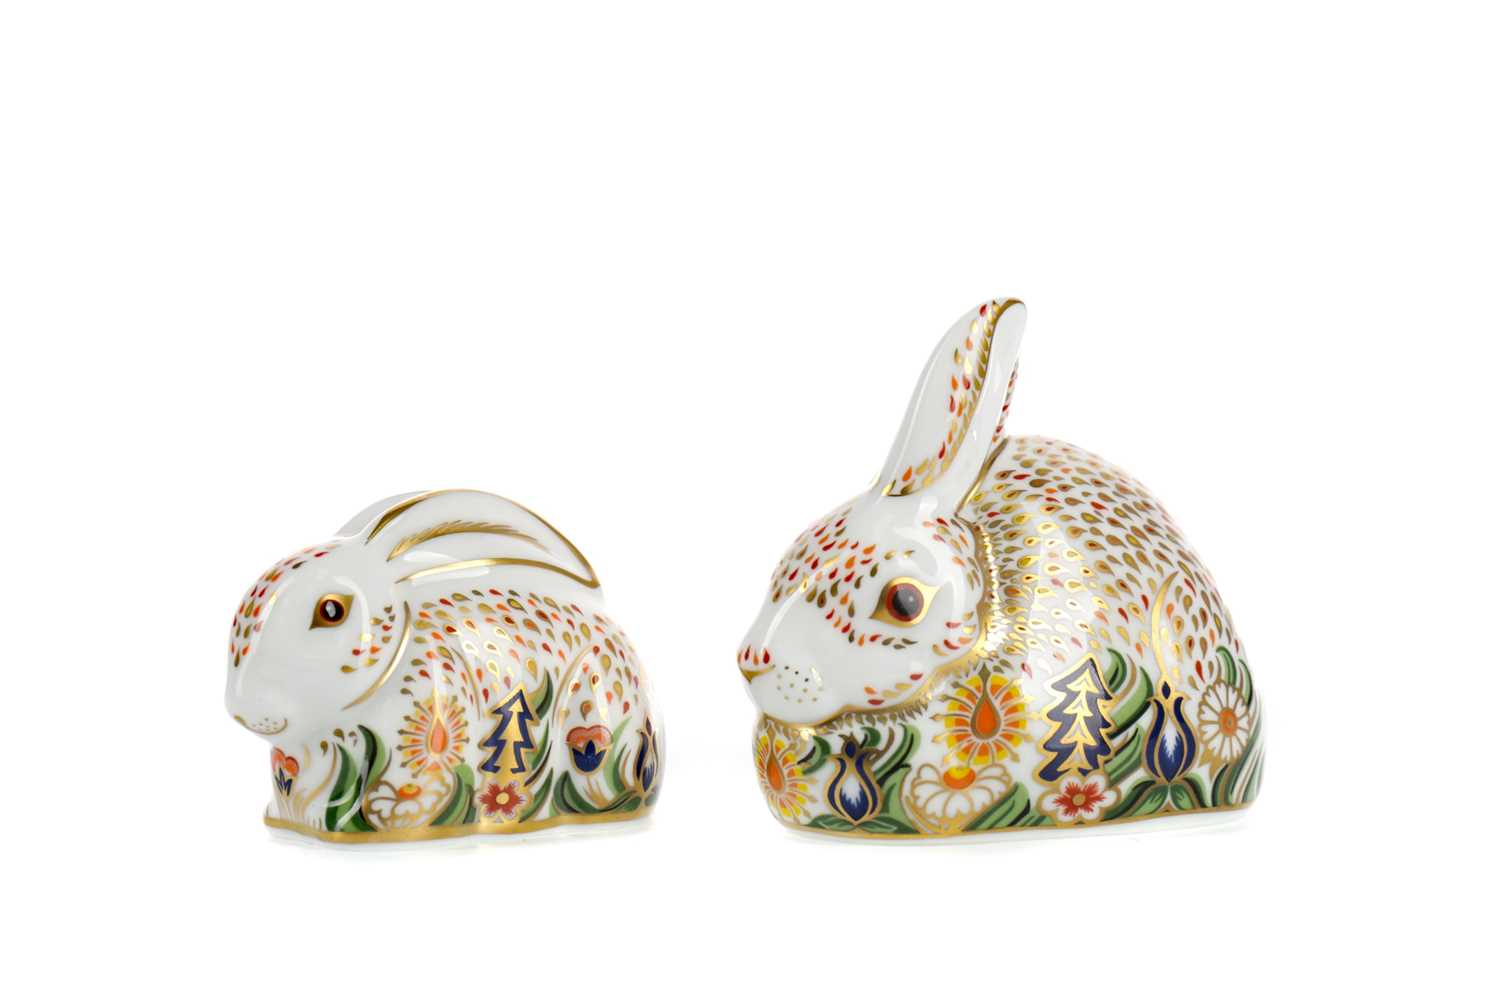 Lot 1035 - ROYAL CROWN DERBY 'ROWSLEY RABBIT' AND 'BABY ROWSLEY RABBIT' PAPERWEIGHTS